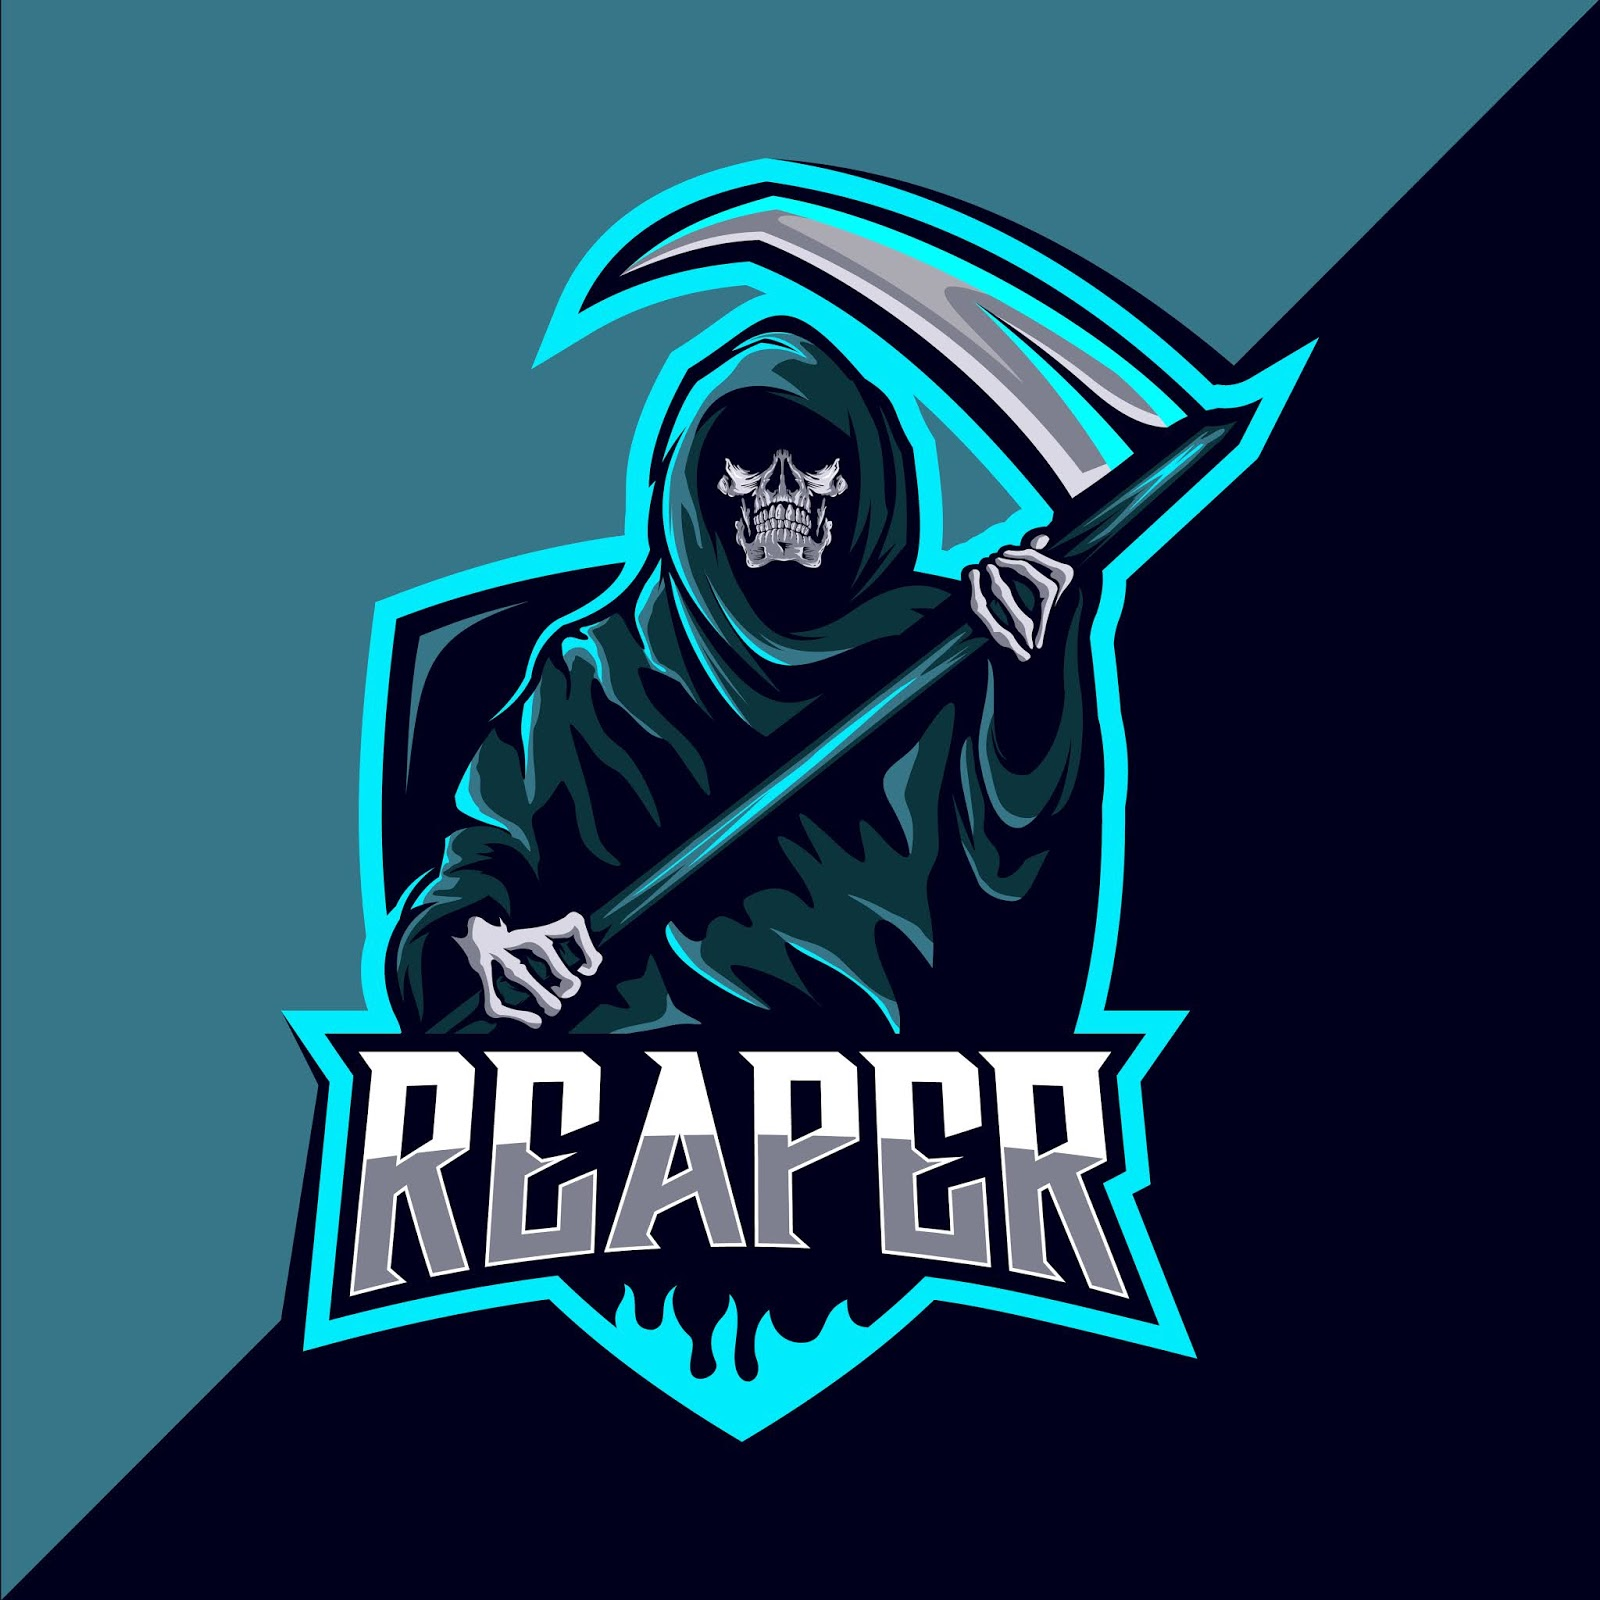 Reaper Skull Mascot Esport Logo Design Free Download Vector CDR, AI, EPS and PNG Formats